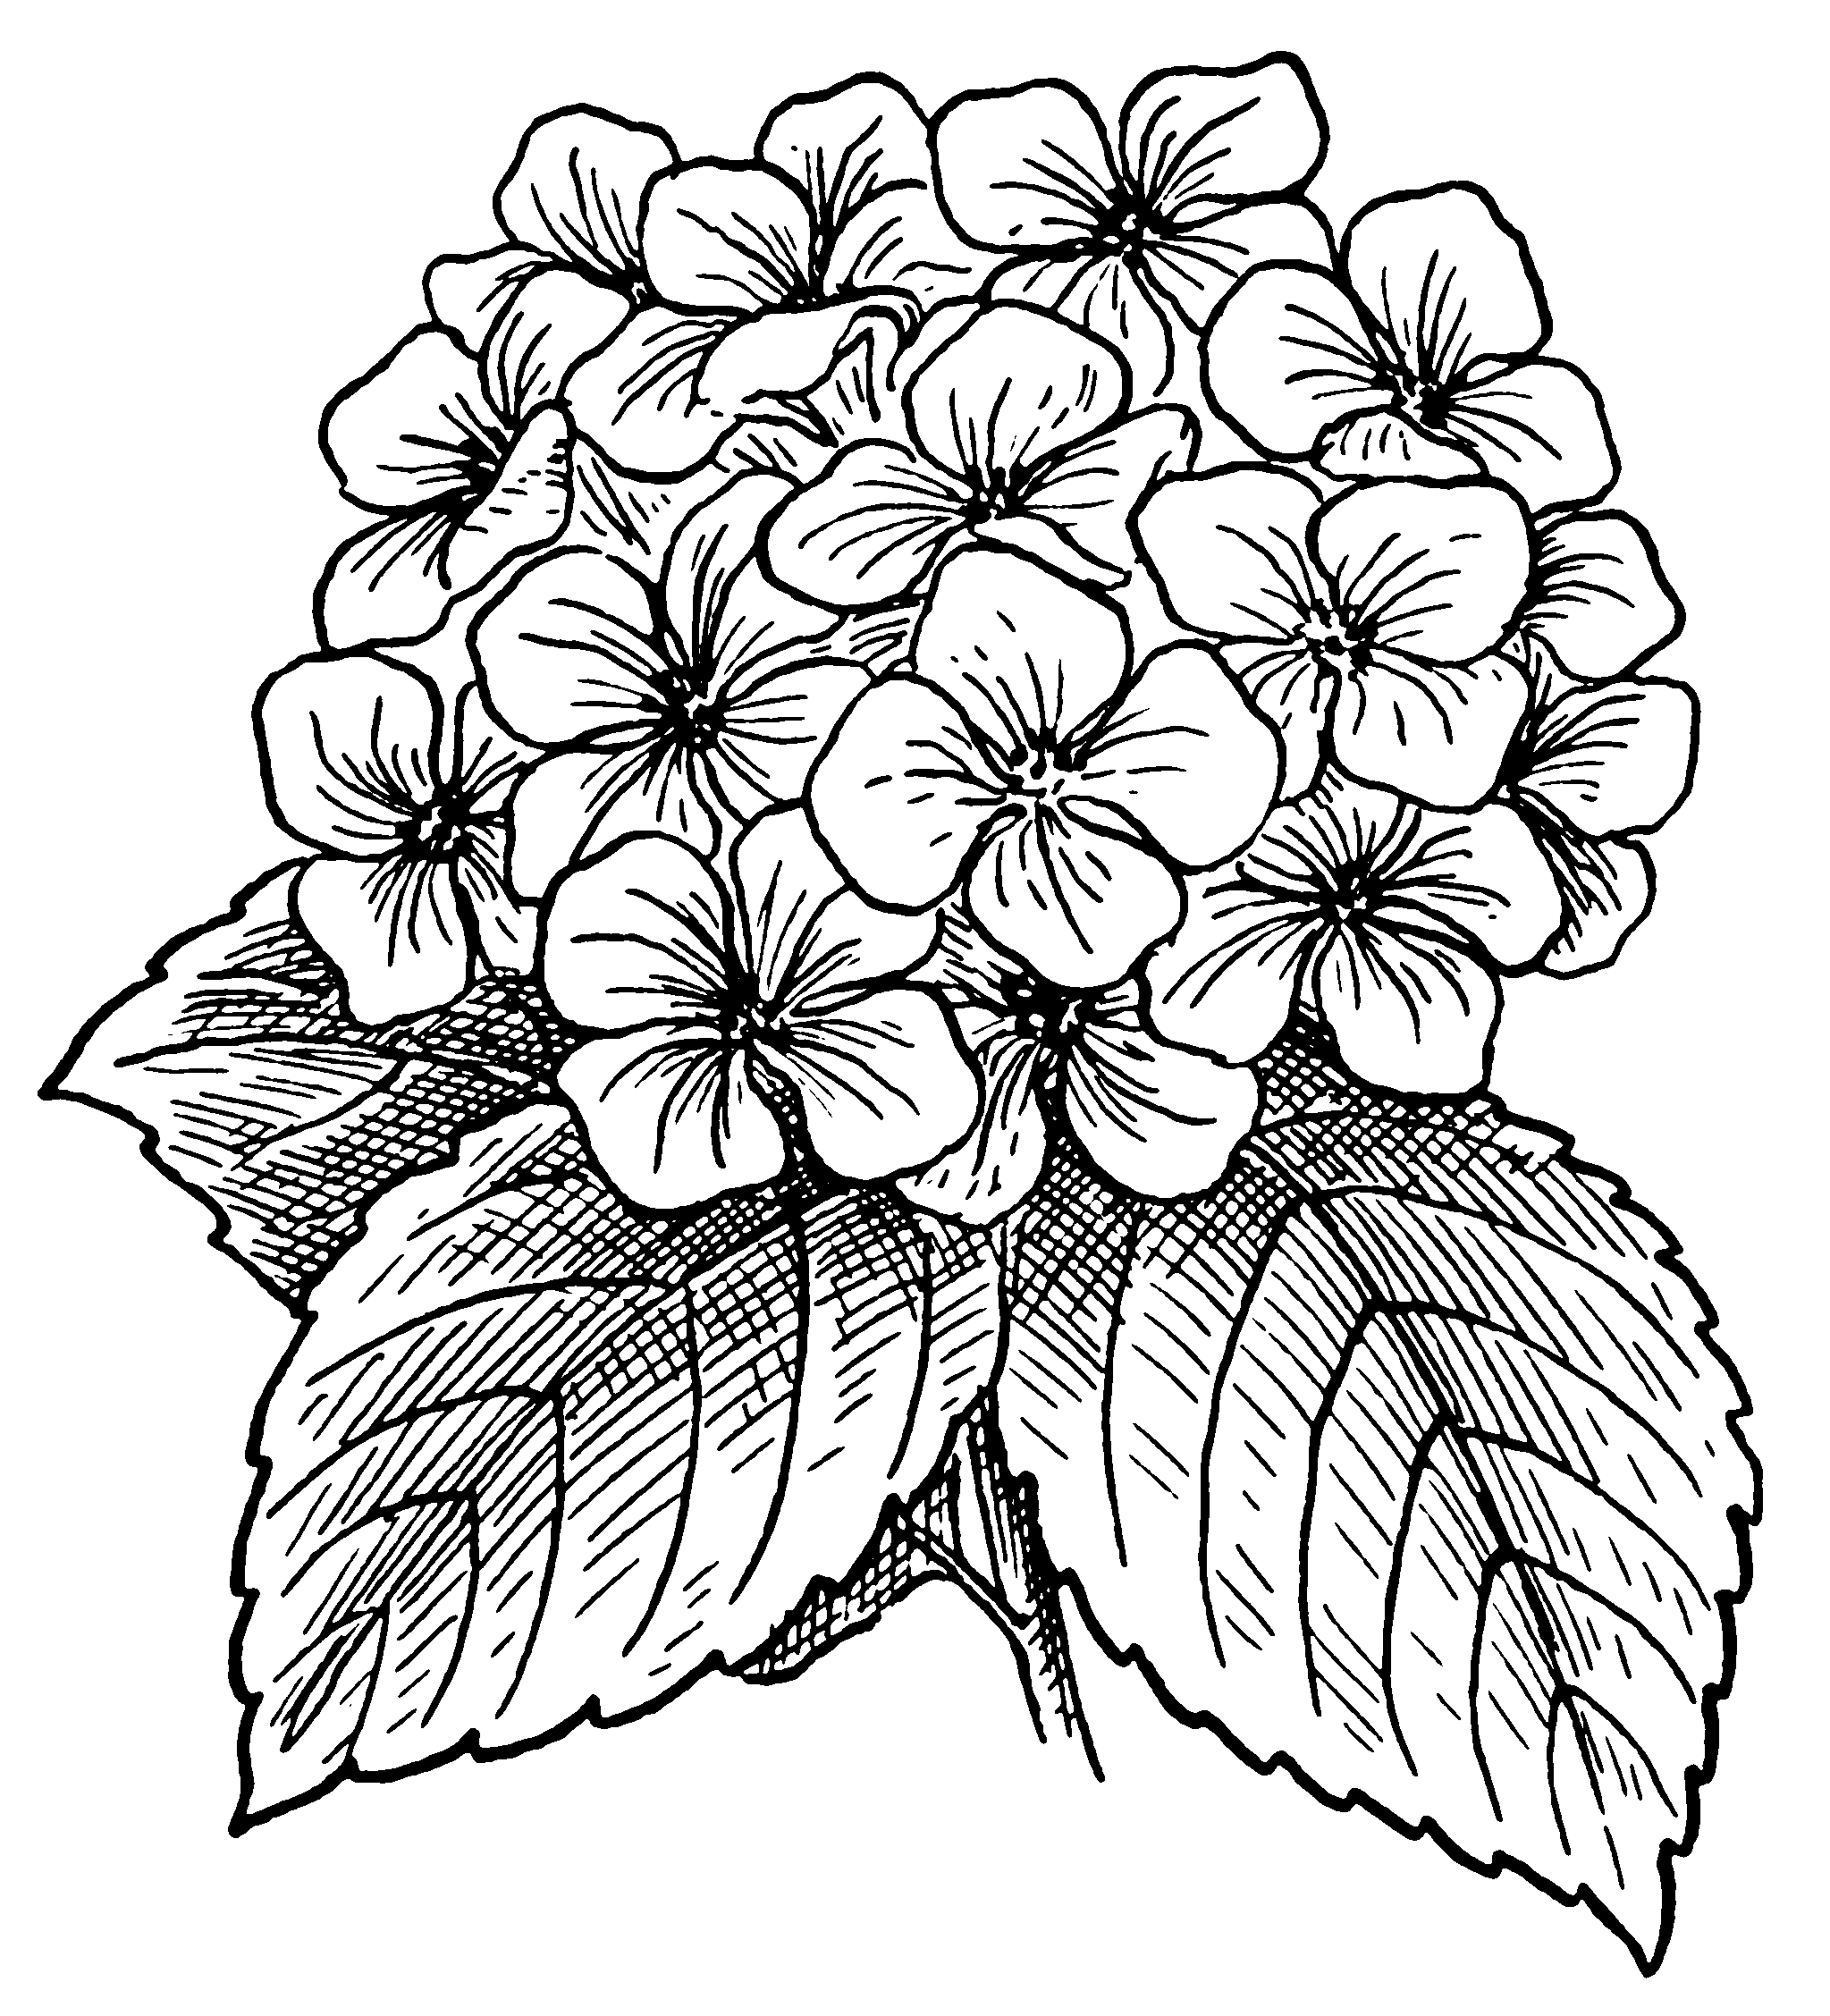 Hydrangea flower coloring pages - Hydrangea Flowers Drawing